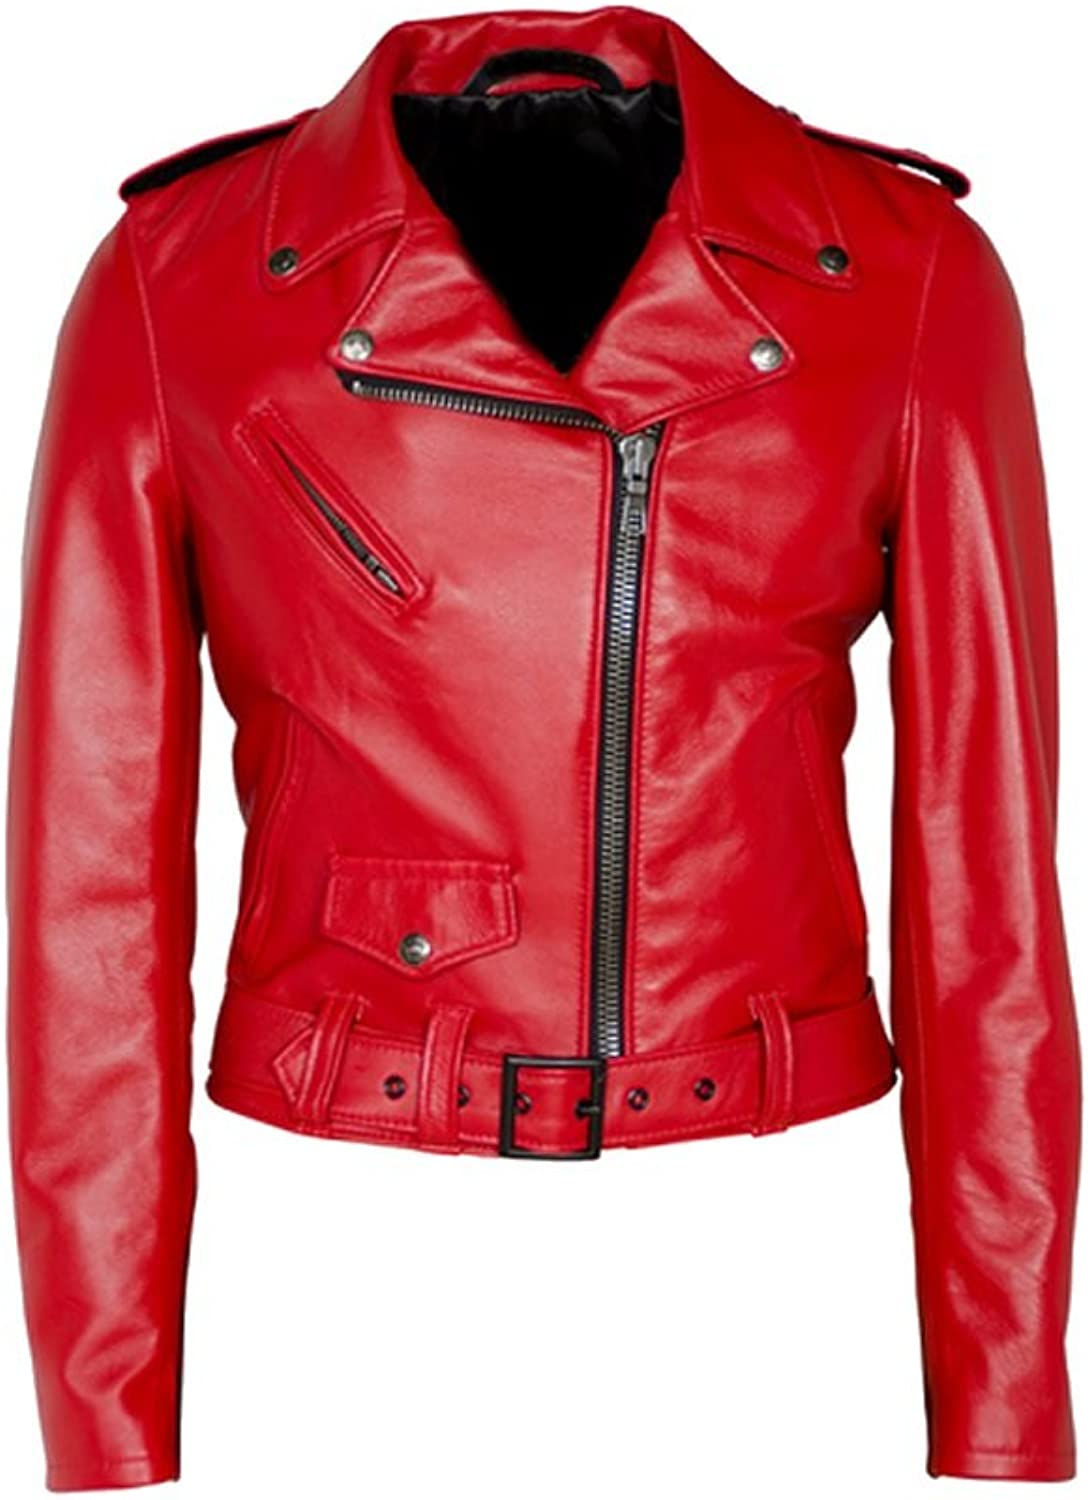 Classyak Women's Terminator Style Red Real Leather Jacket